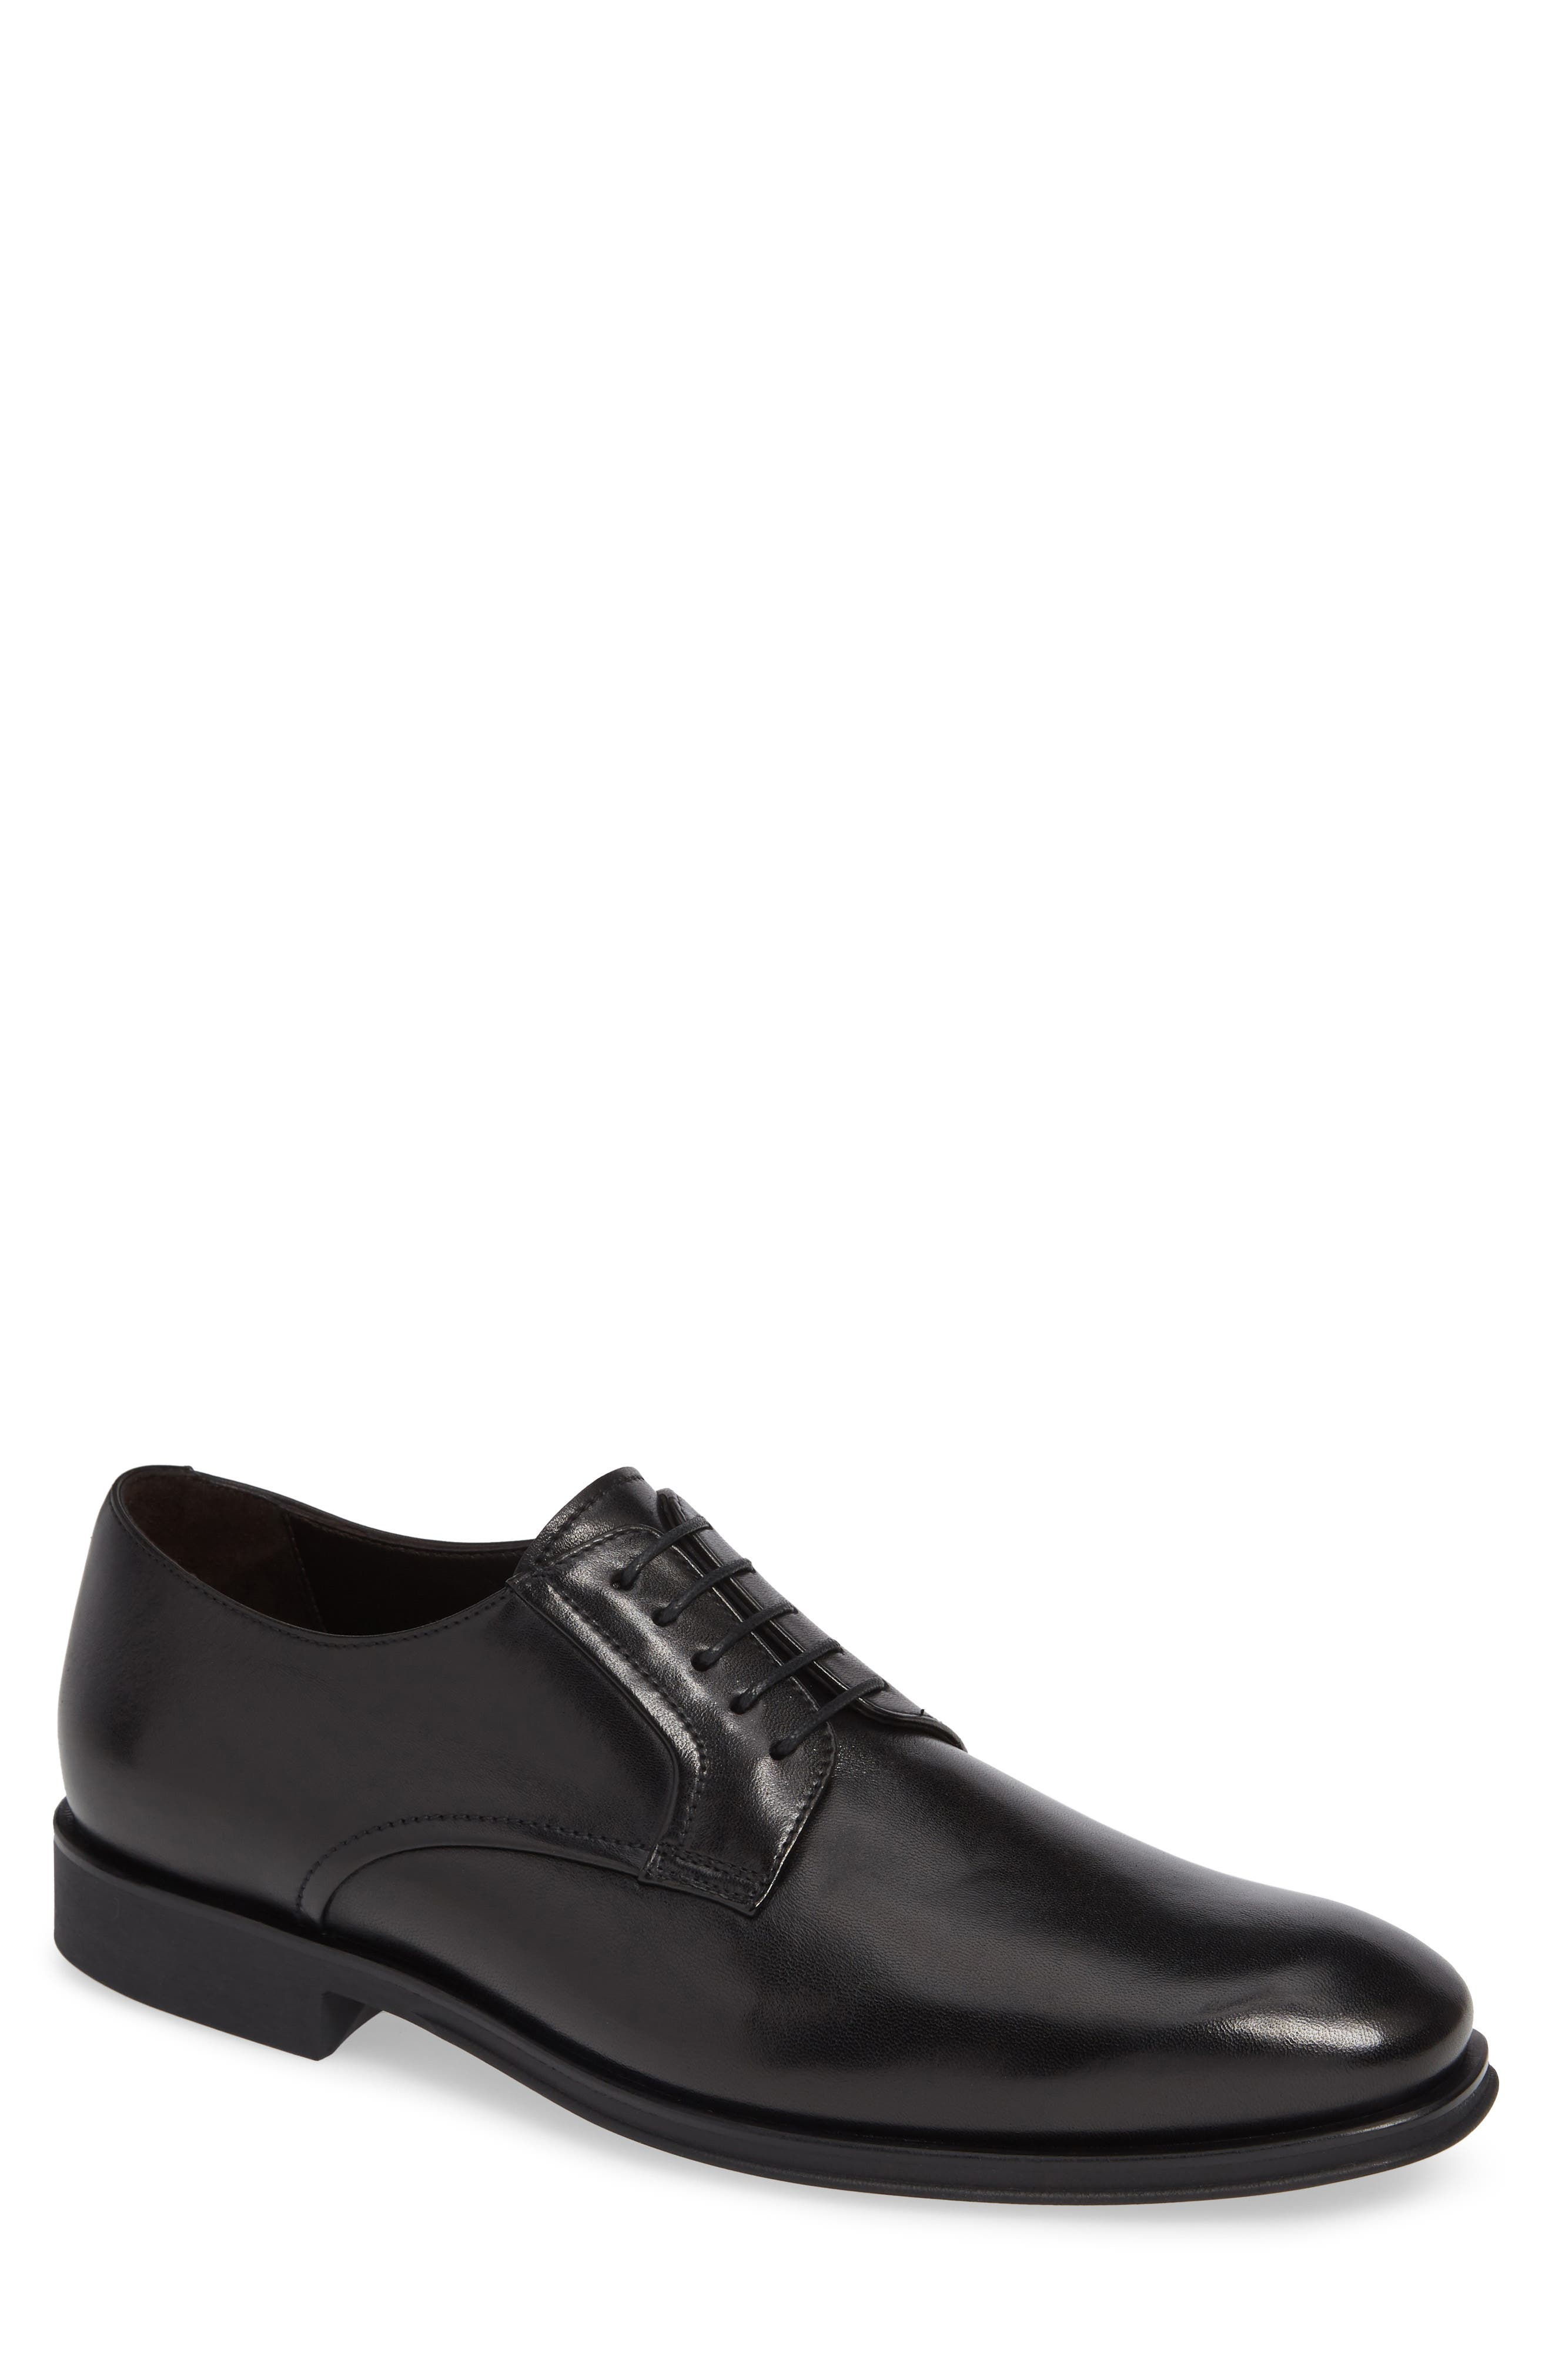 MS Zurich Oxford,                         Main,                         color, BLACK LEATHER